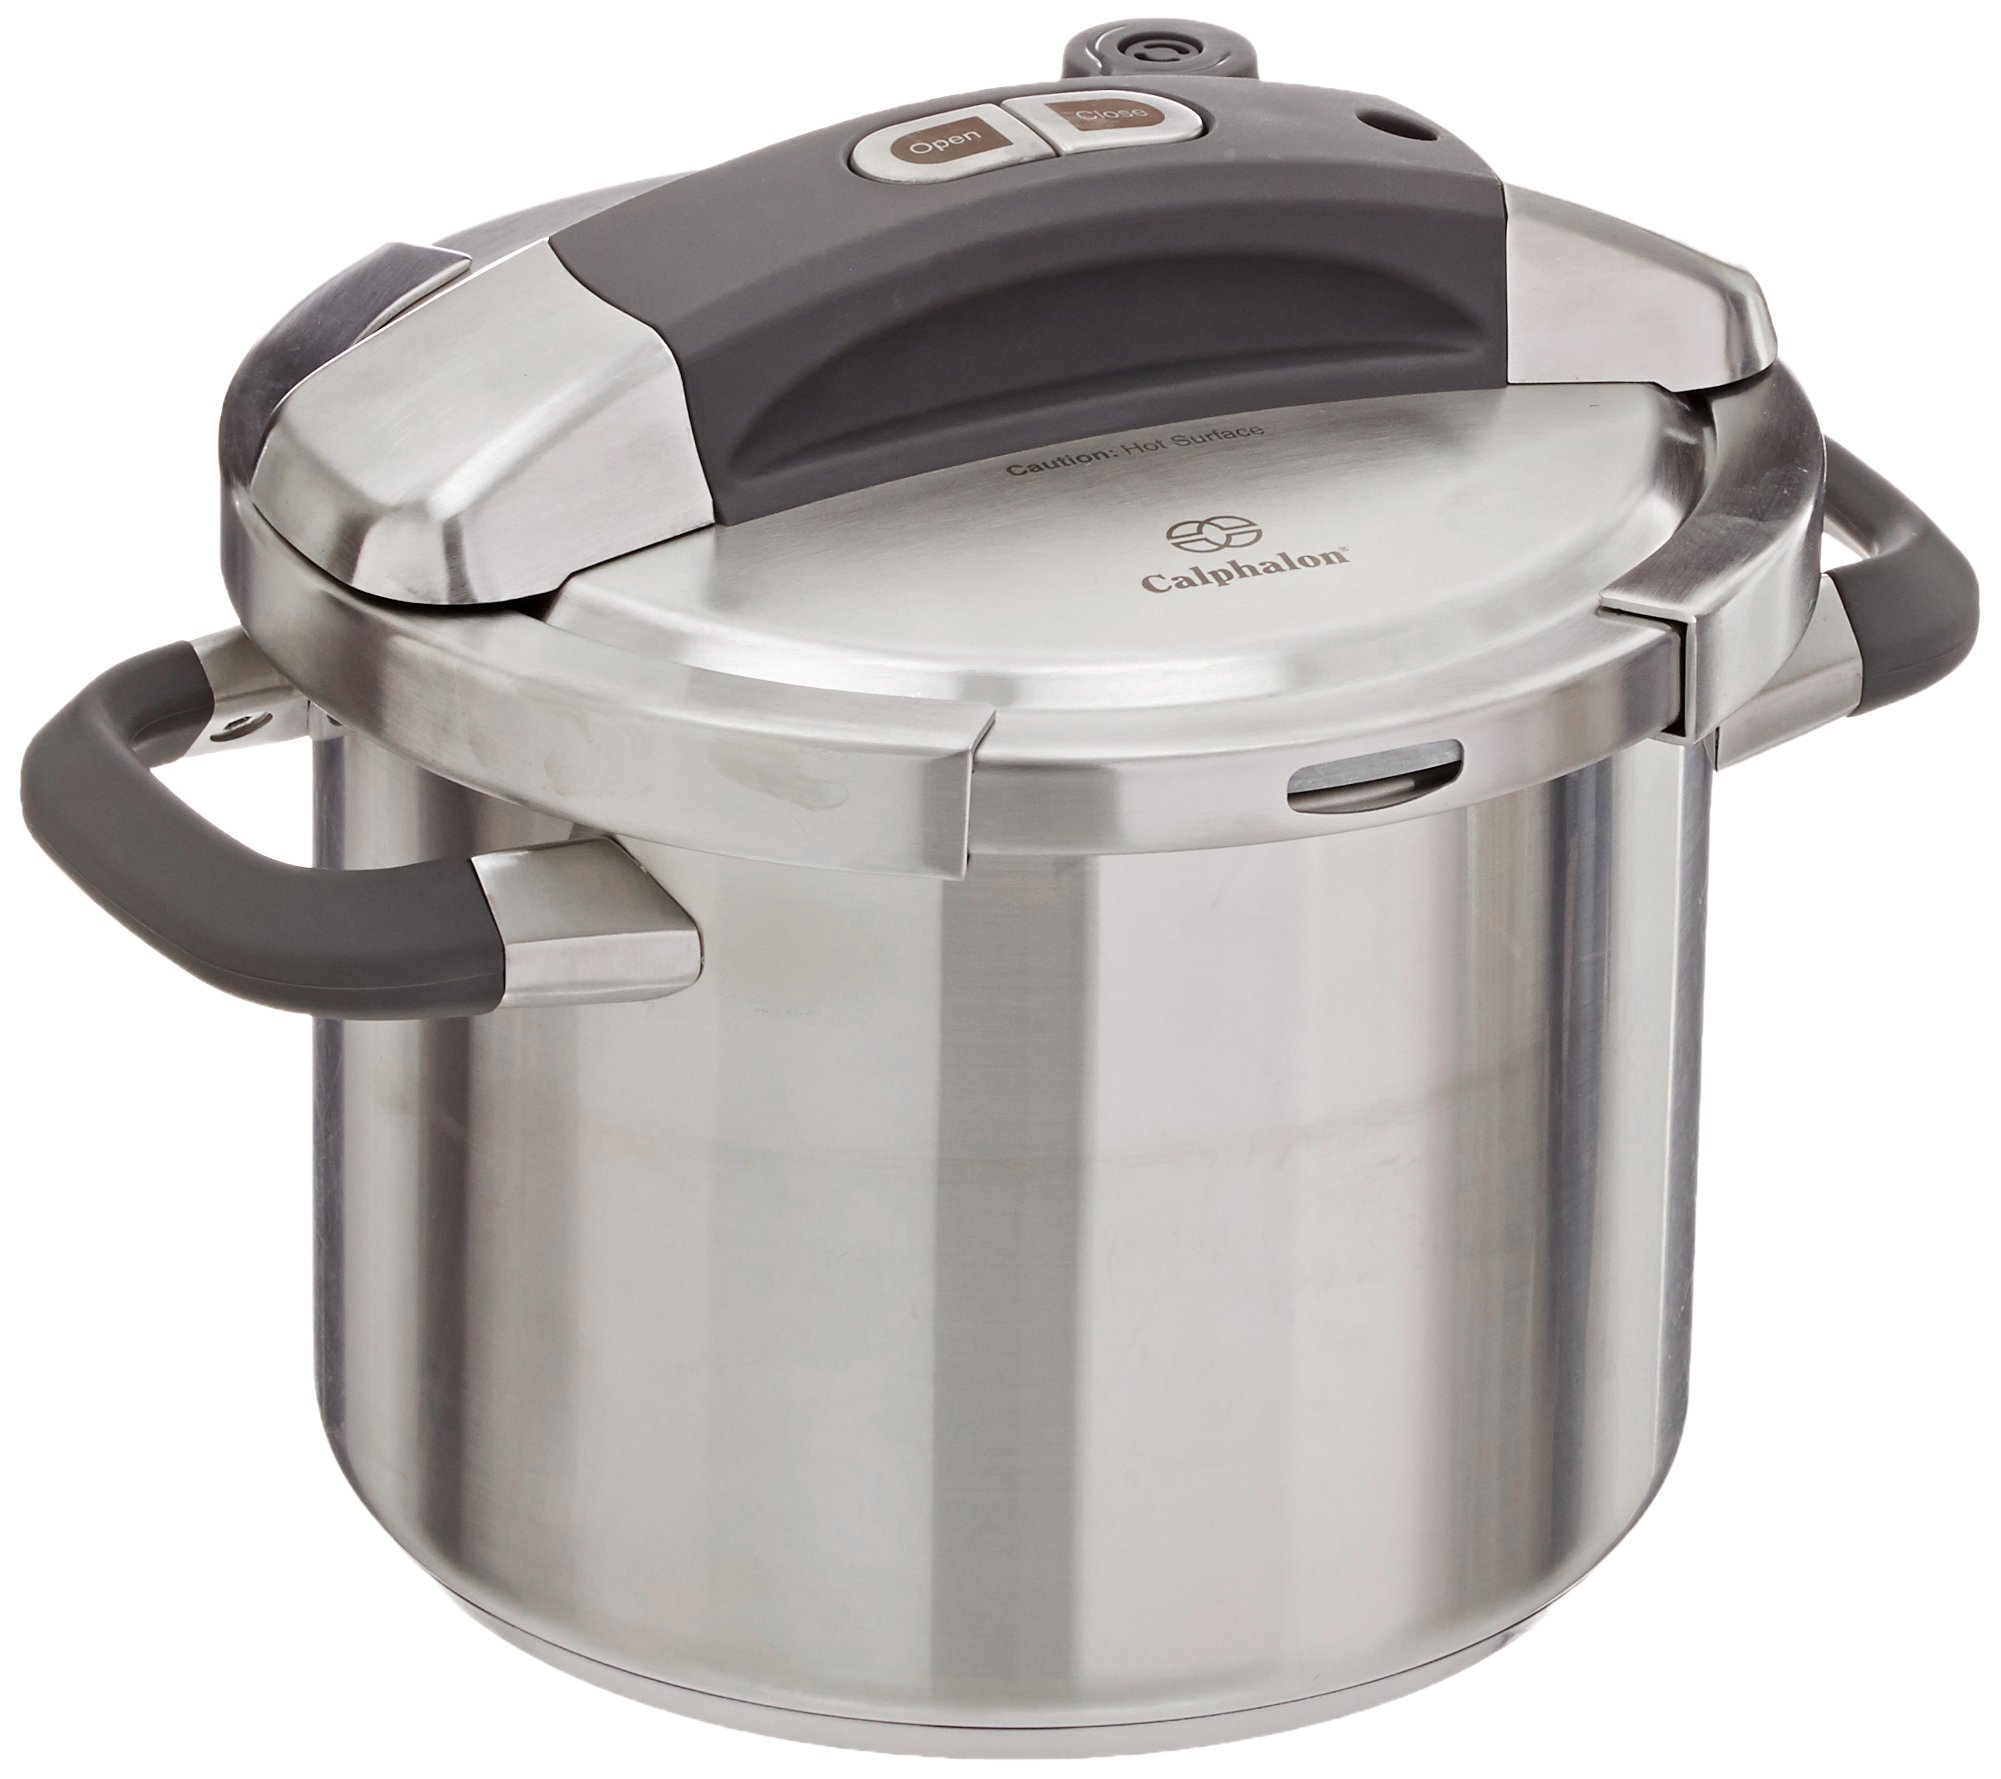 Calphalon Stainless Steel Pressure Cooker, 6-quart by Calphalon (Image #1)